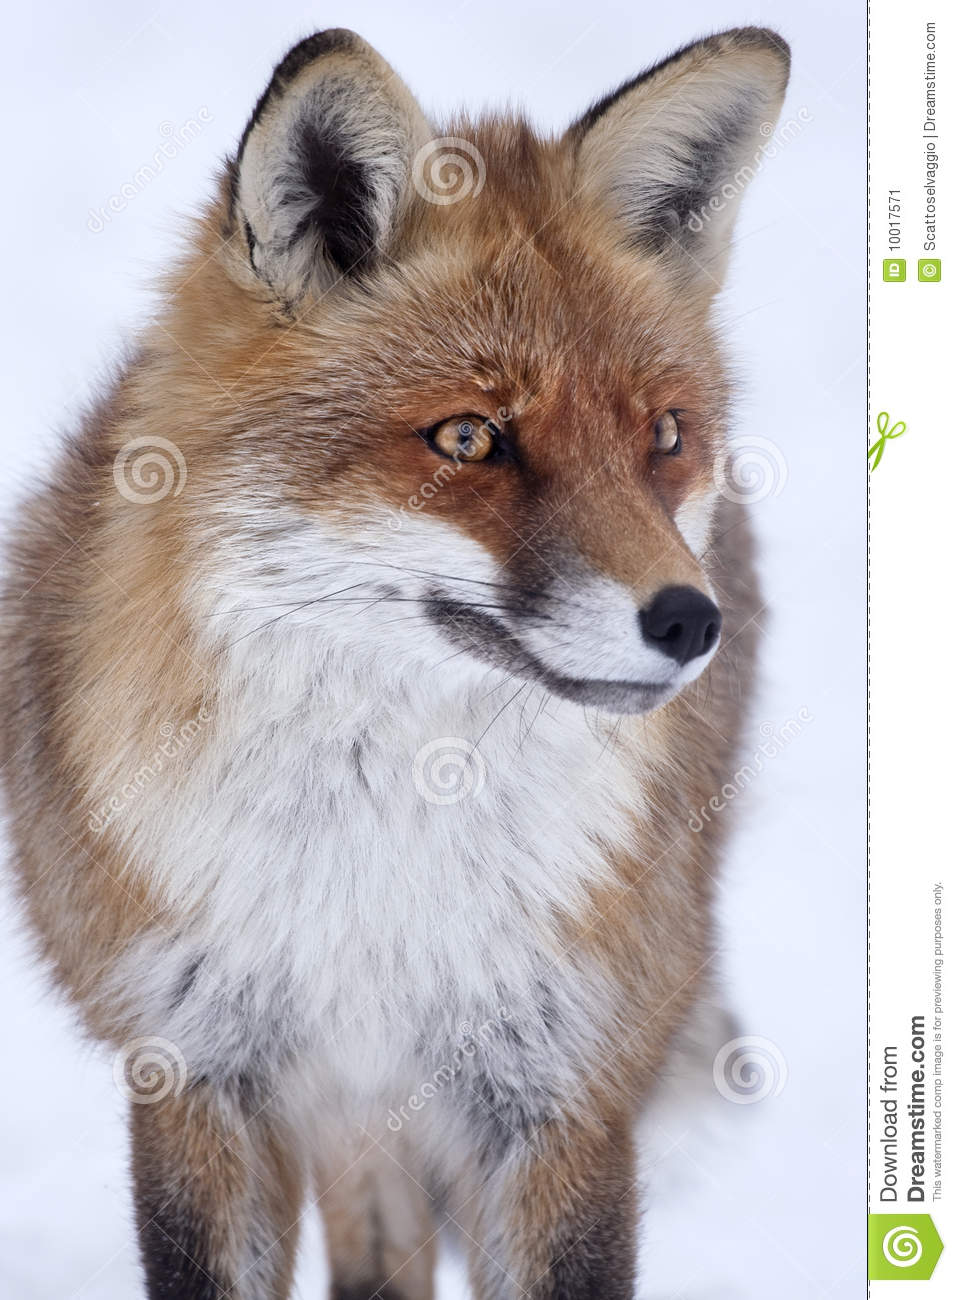 Red Fox (Vulpes vulpes) in winter. Red Fox (Vulpes vulpes) in the snow, white background, looking forward.